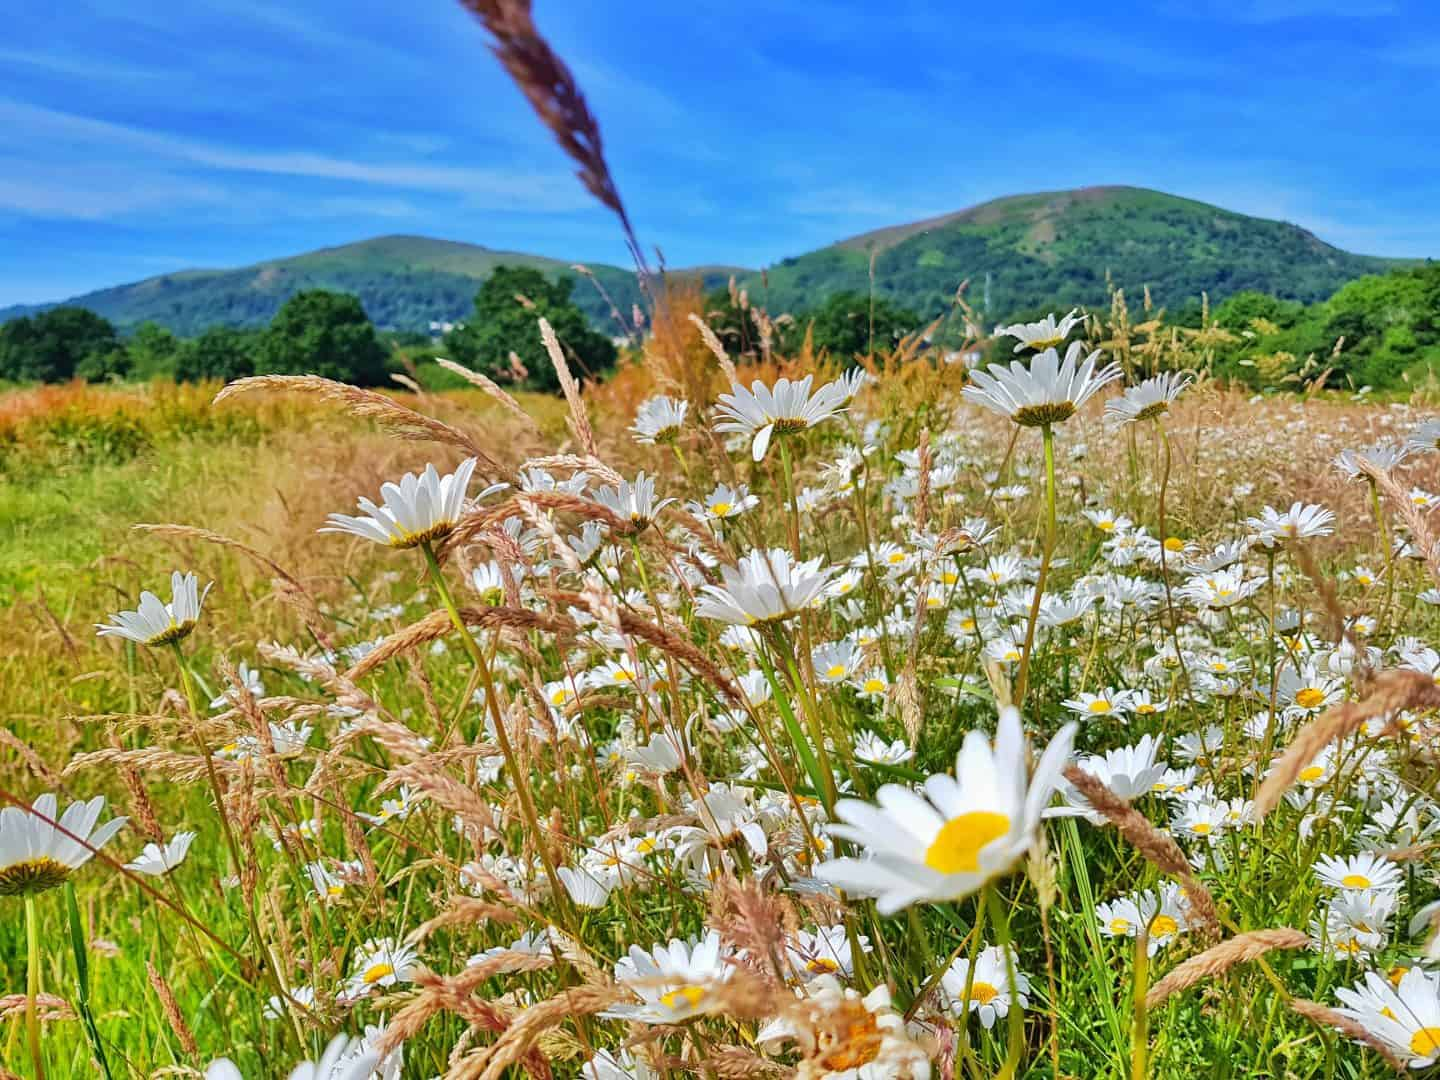 Daisies in foreground with Malvern hills in background